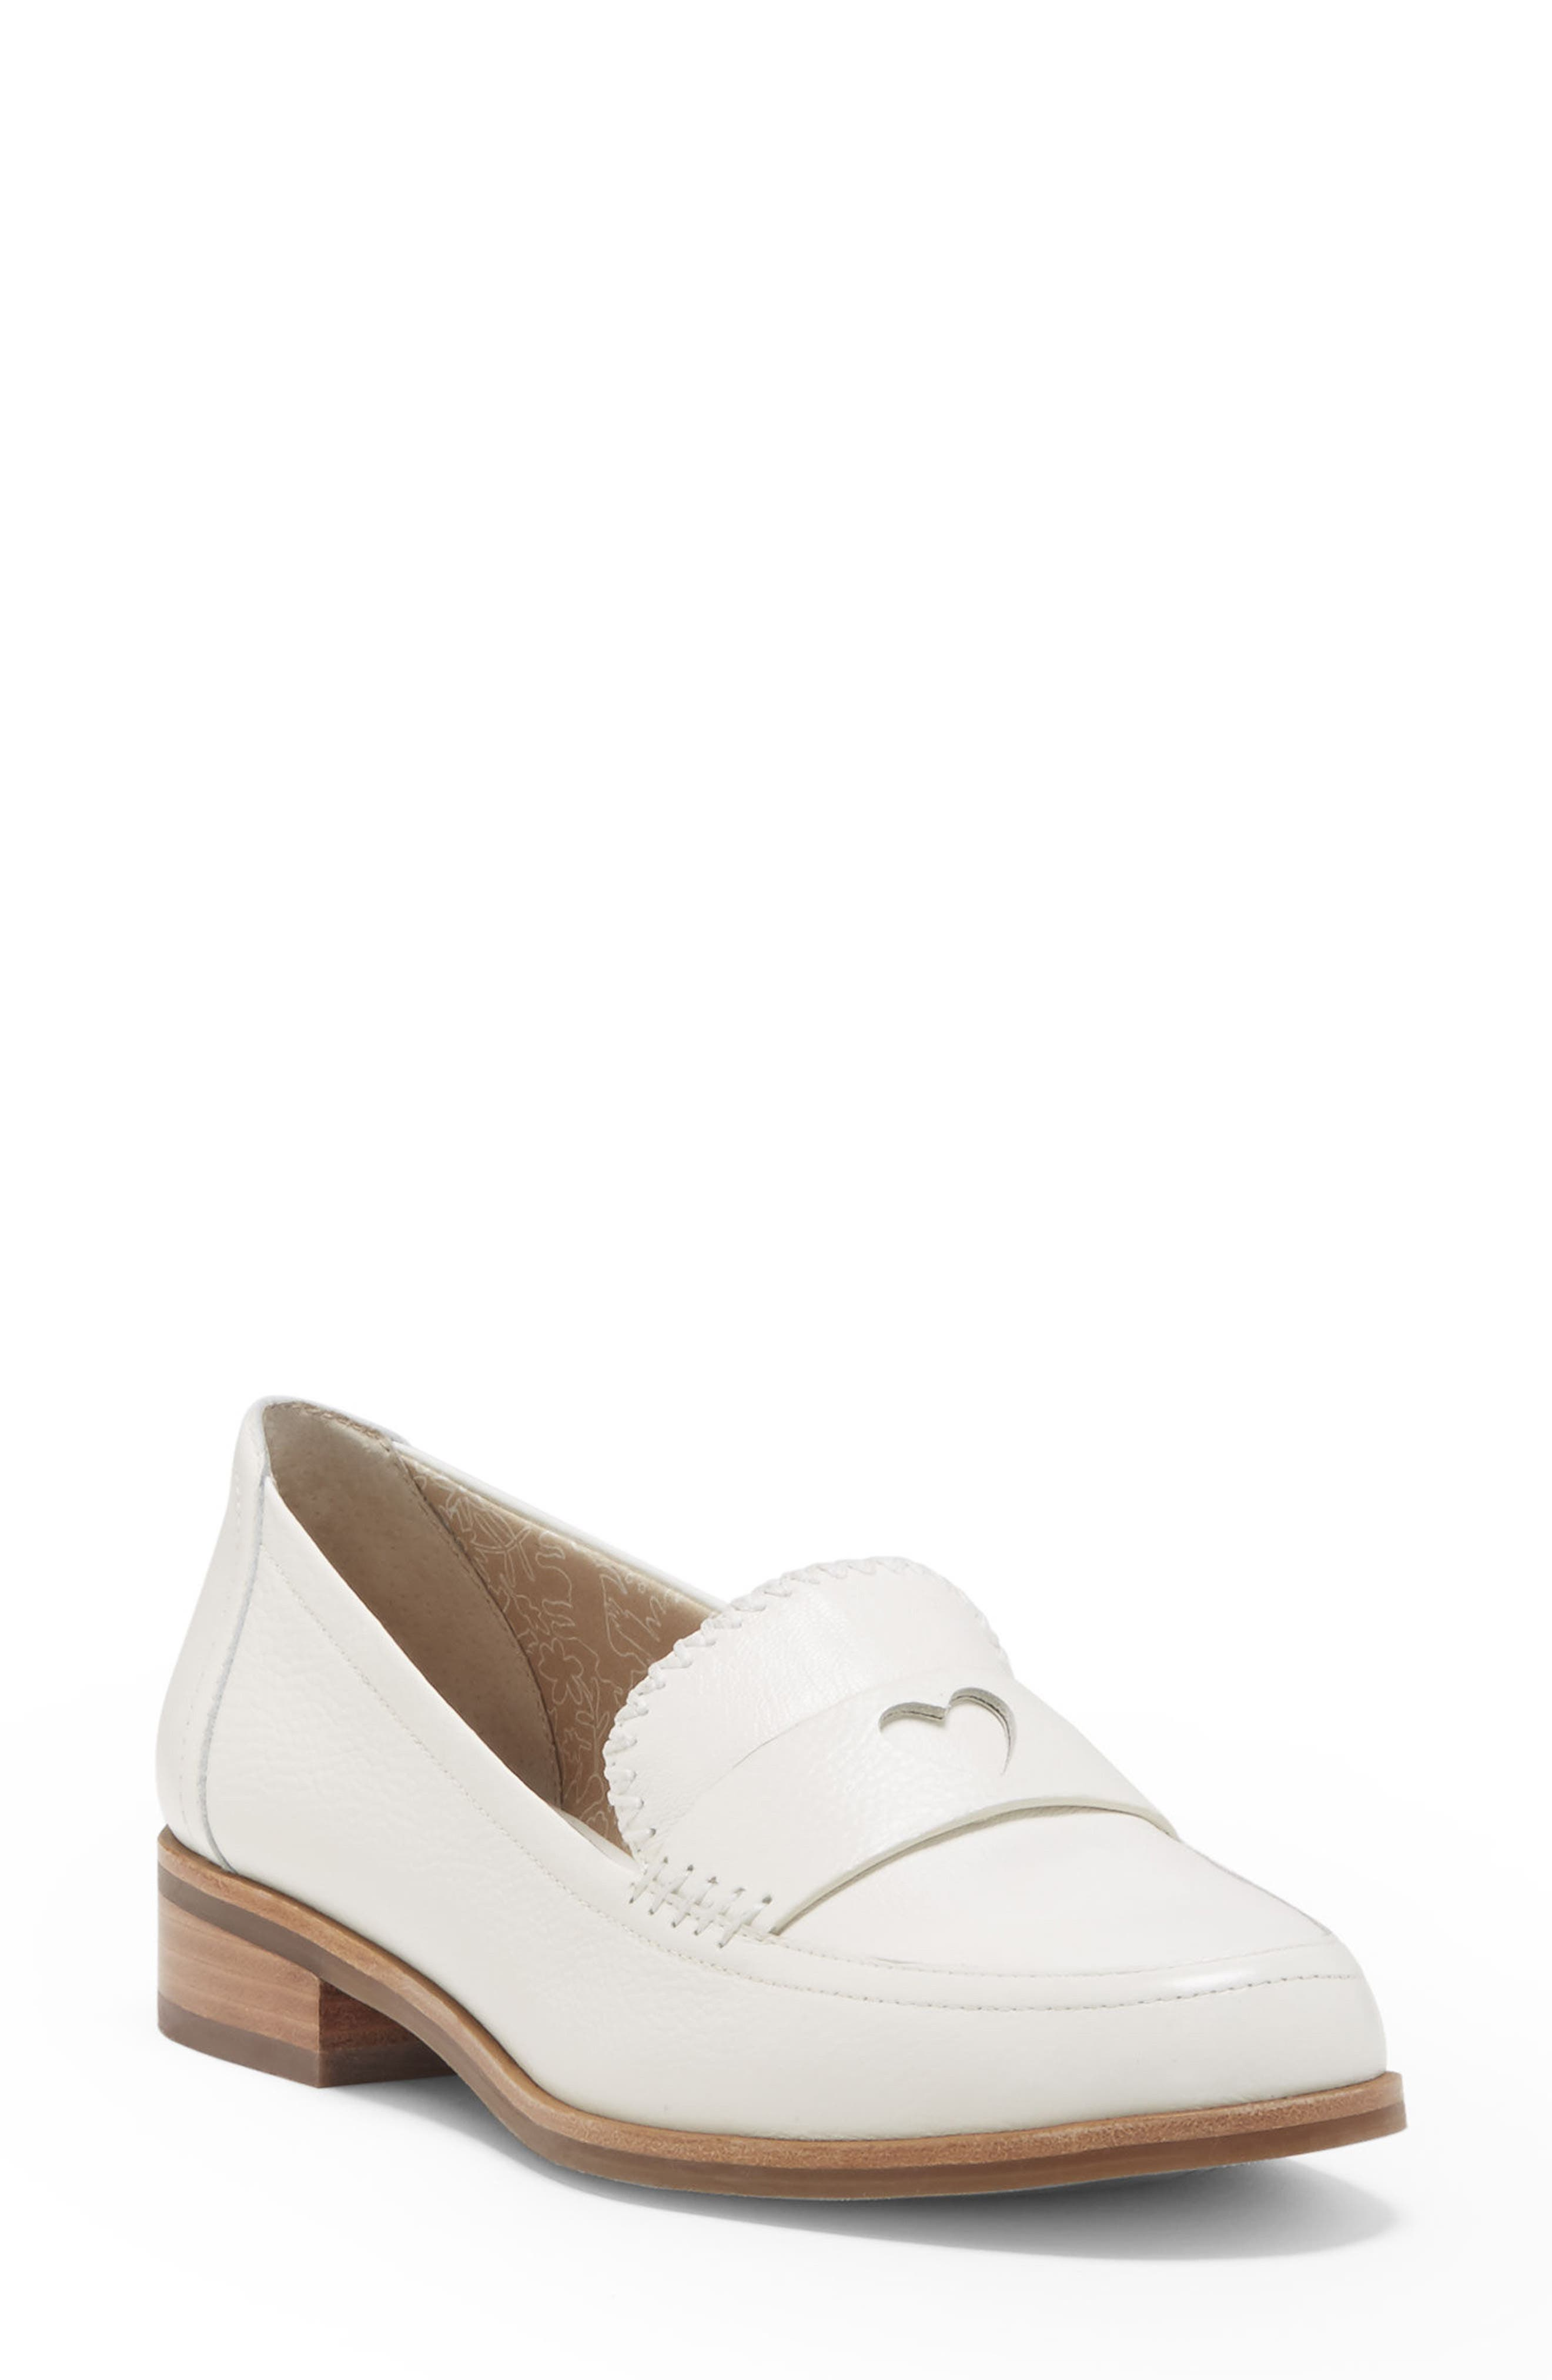 Laddie Loafer,                         Main,                         color, MILK LEATHER